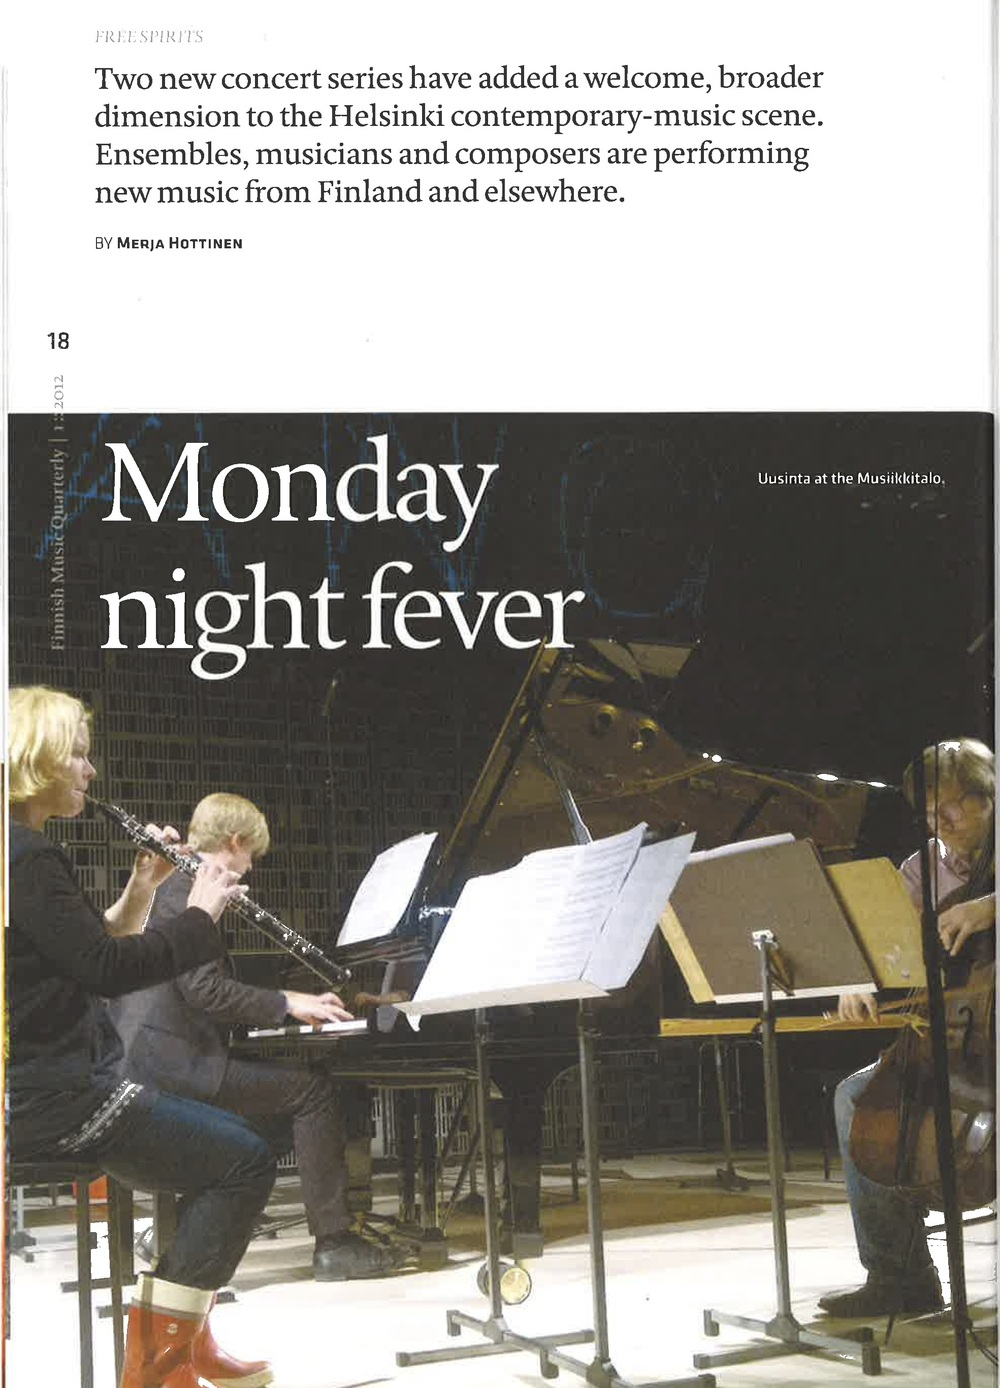 Finnish Music Quarterly, 1/2012